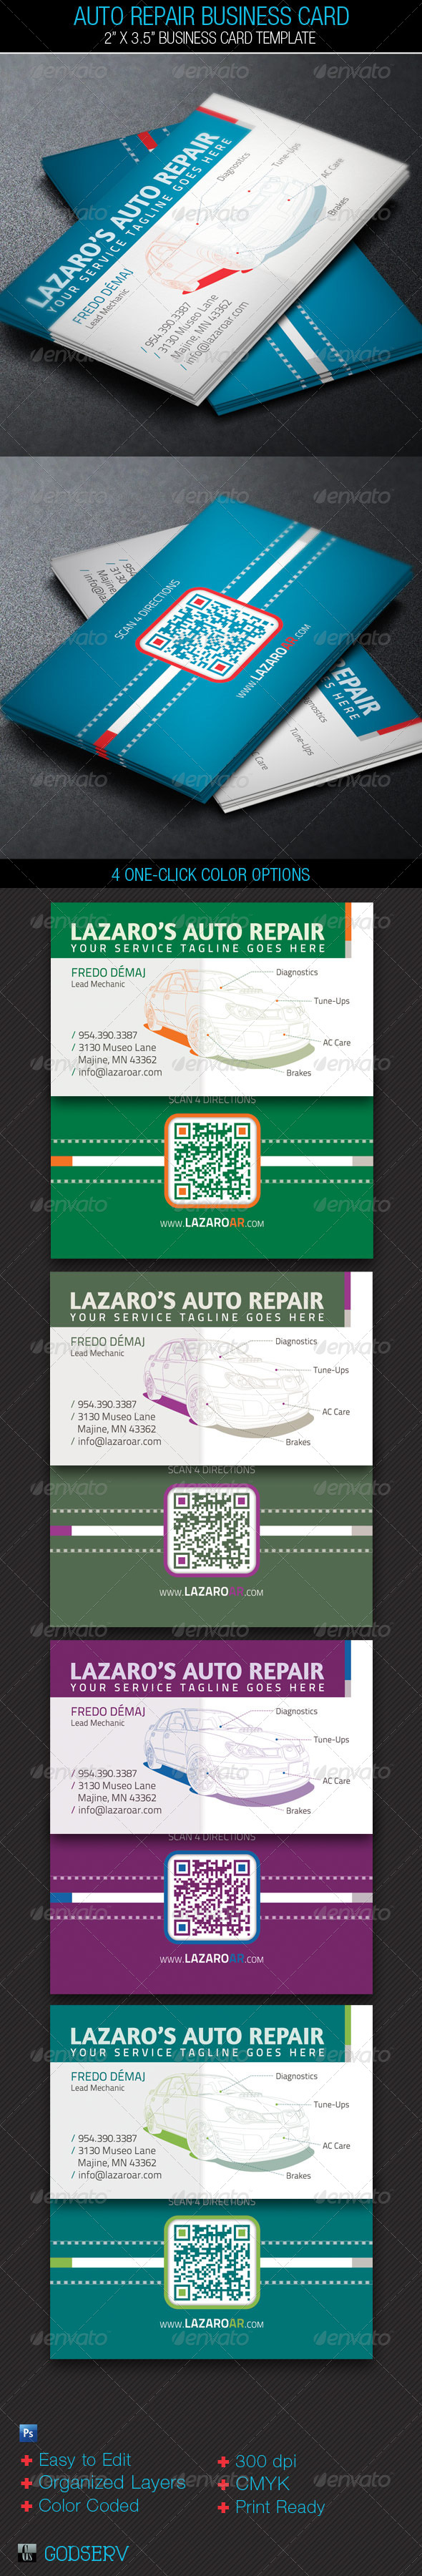 Auto Repair Service Business Card Template - Industry Specific Business Cards